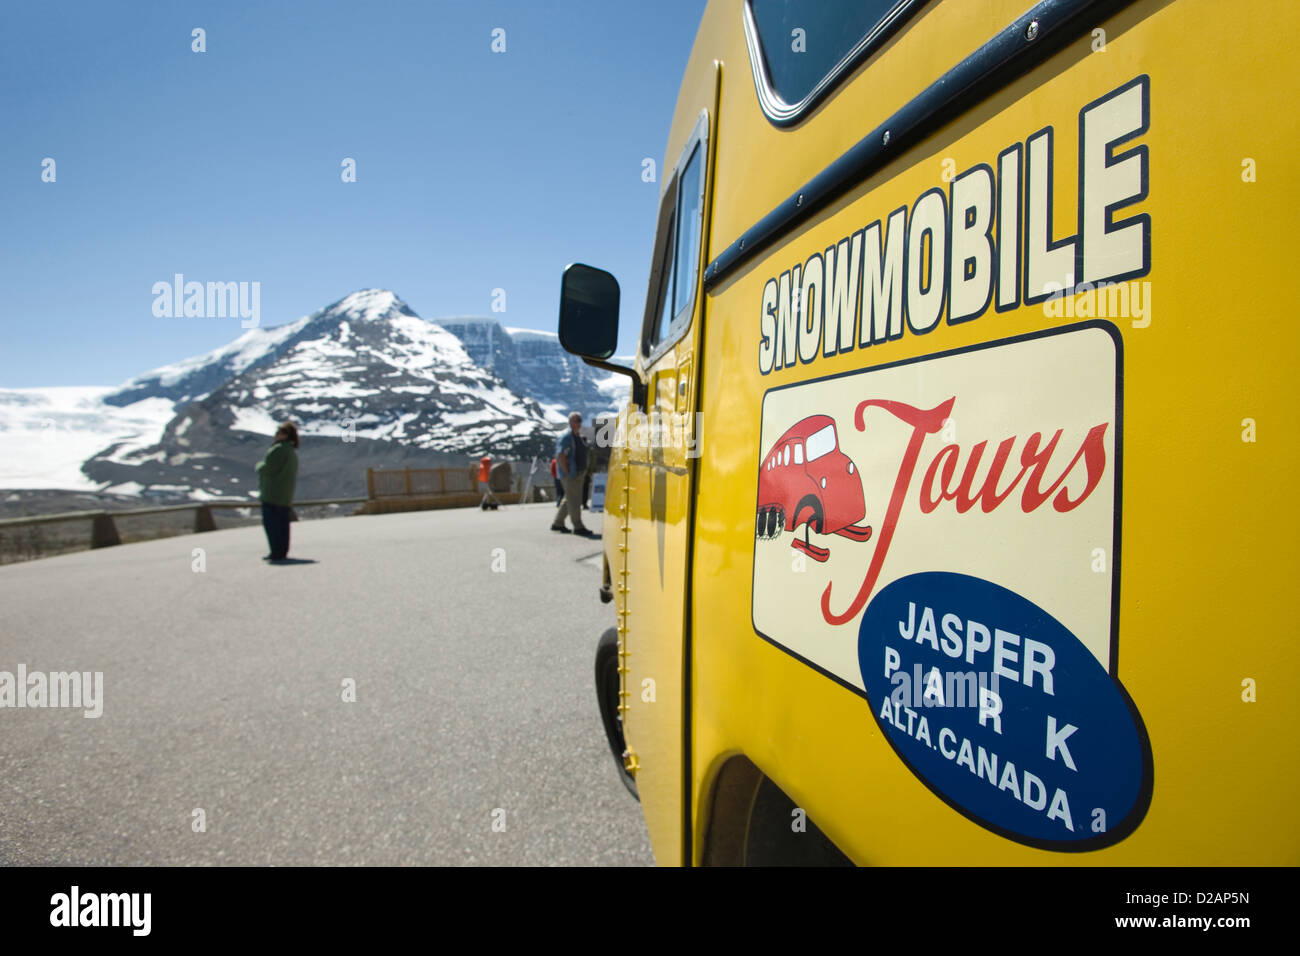 OLD YELLOW TOUR SNOWMOBILE AT VISITORS CENTER COLUMBIA ICEFIELD JASPER NATIONAL PARK ALBERTA CANADA - Stock Image